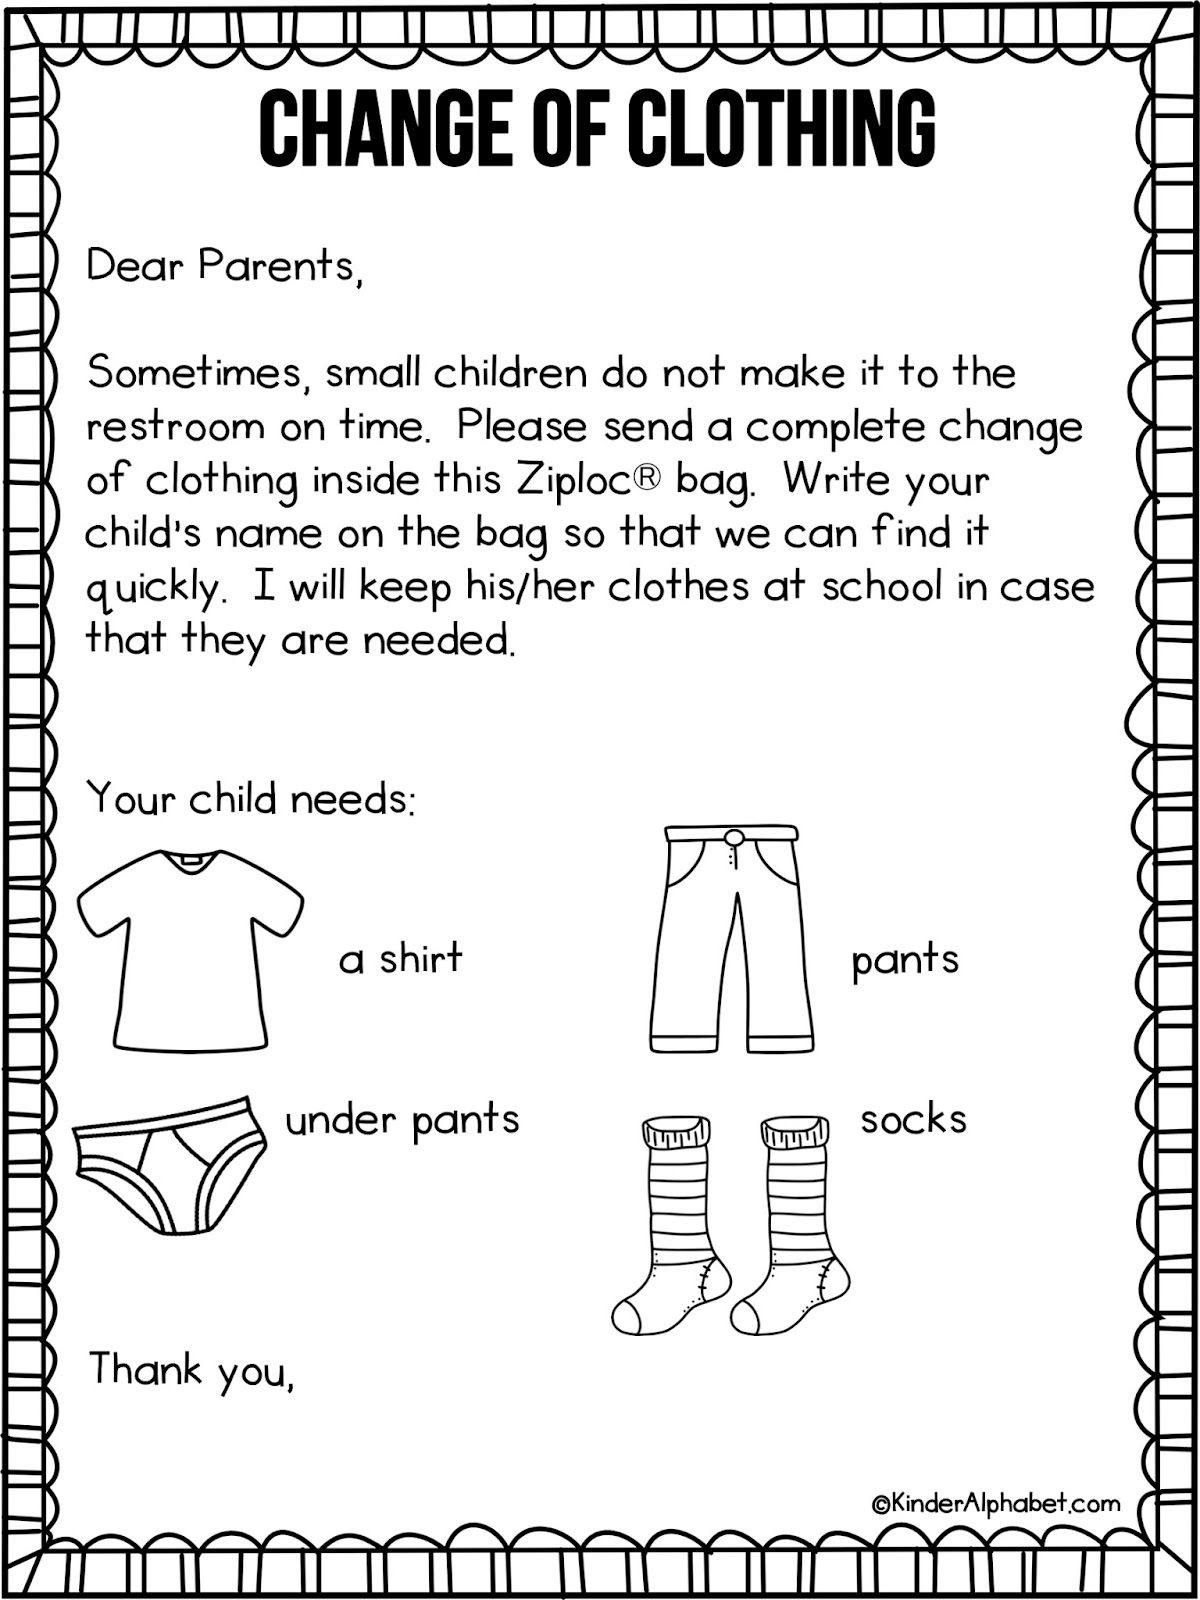 FREE Parent Letter for Change of Clothing | Teaching fun--teacher ...